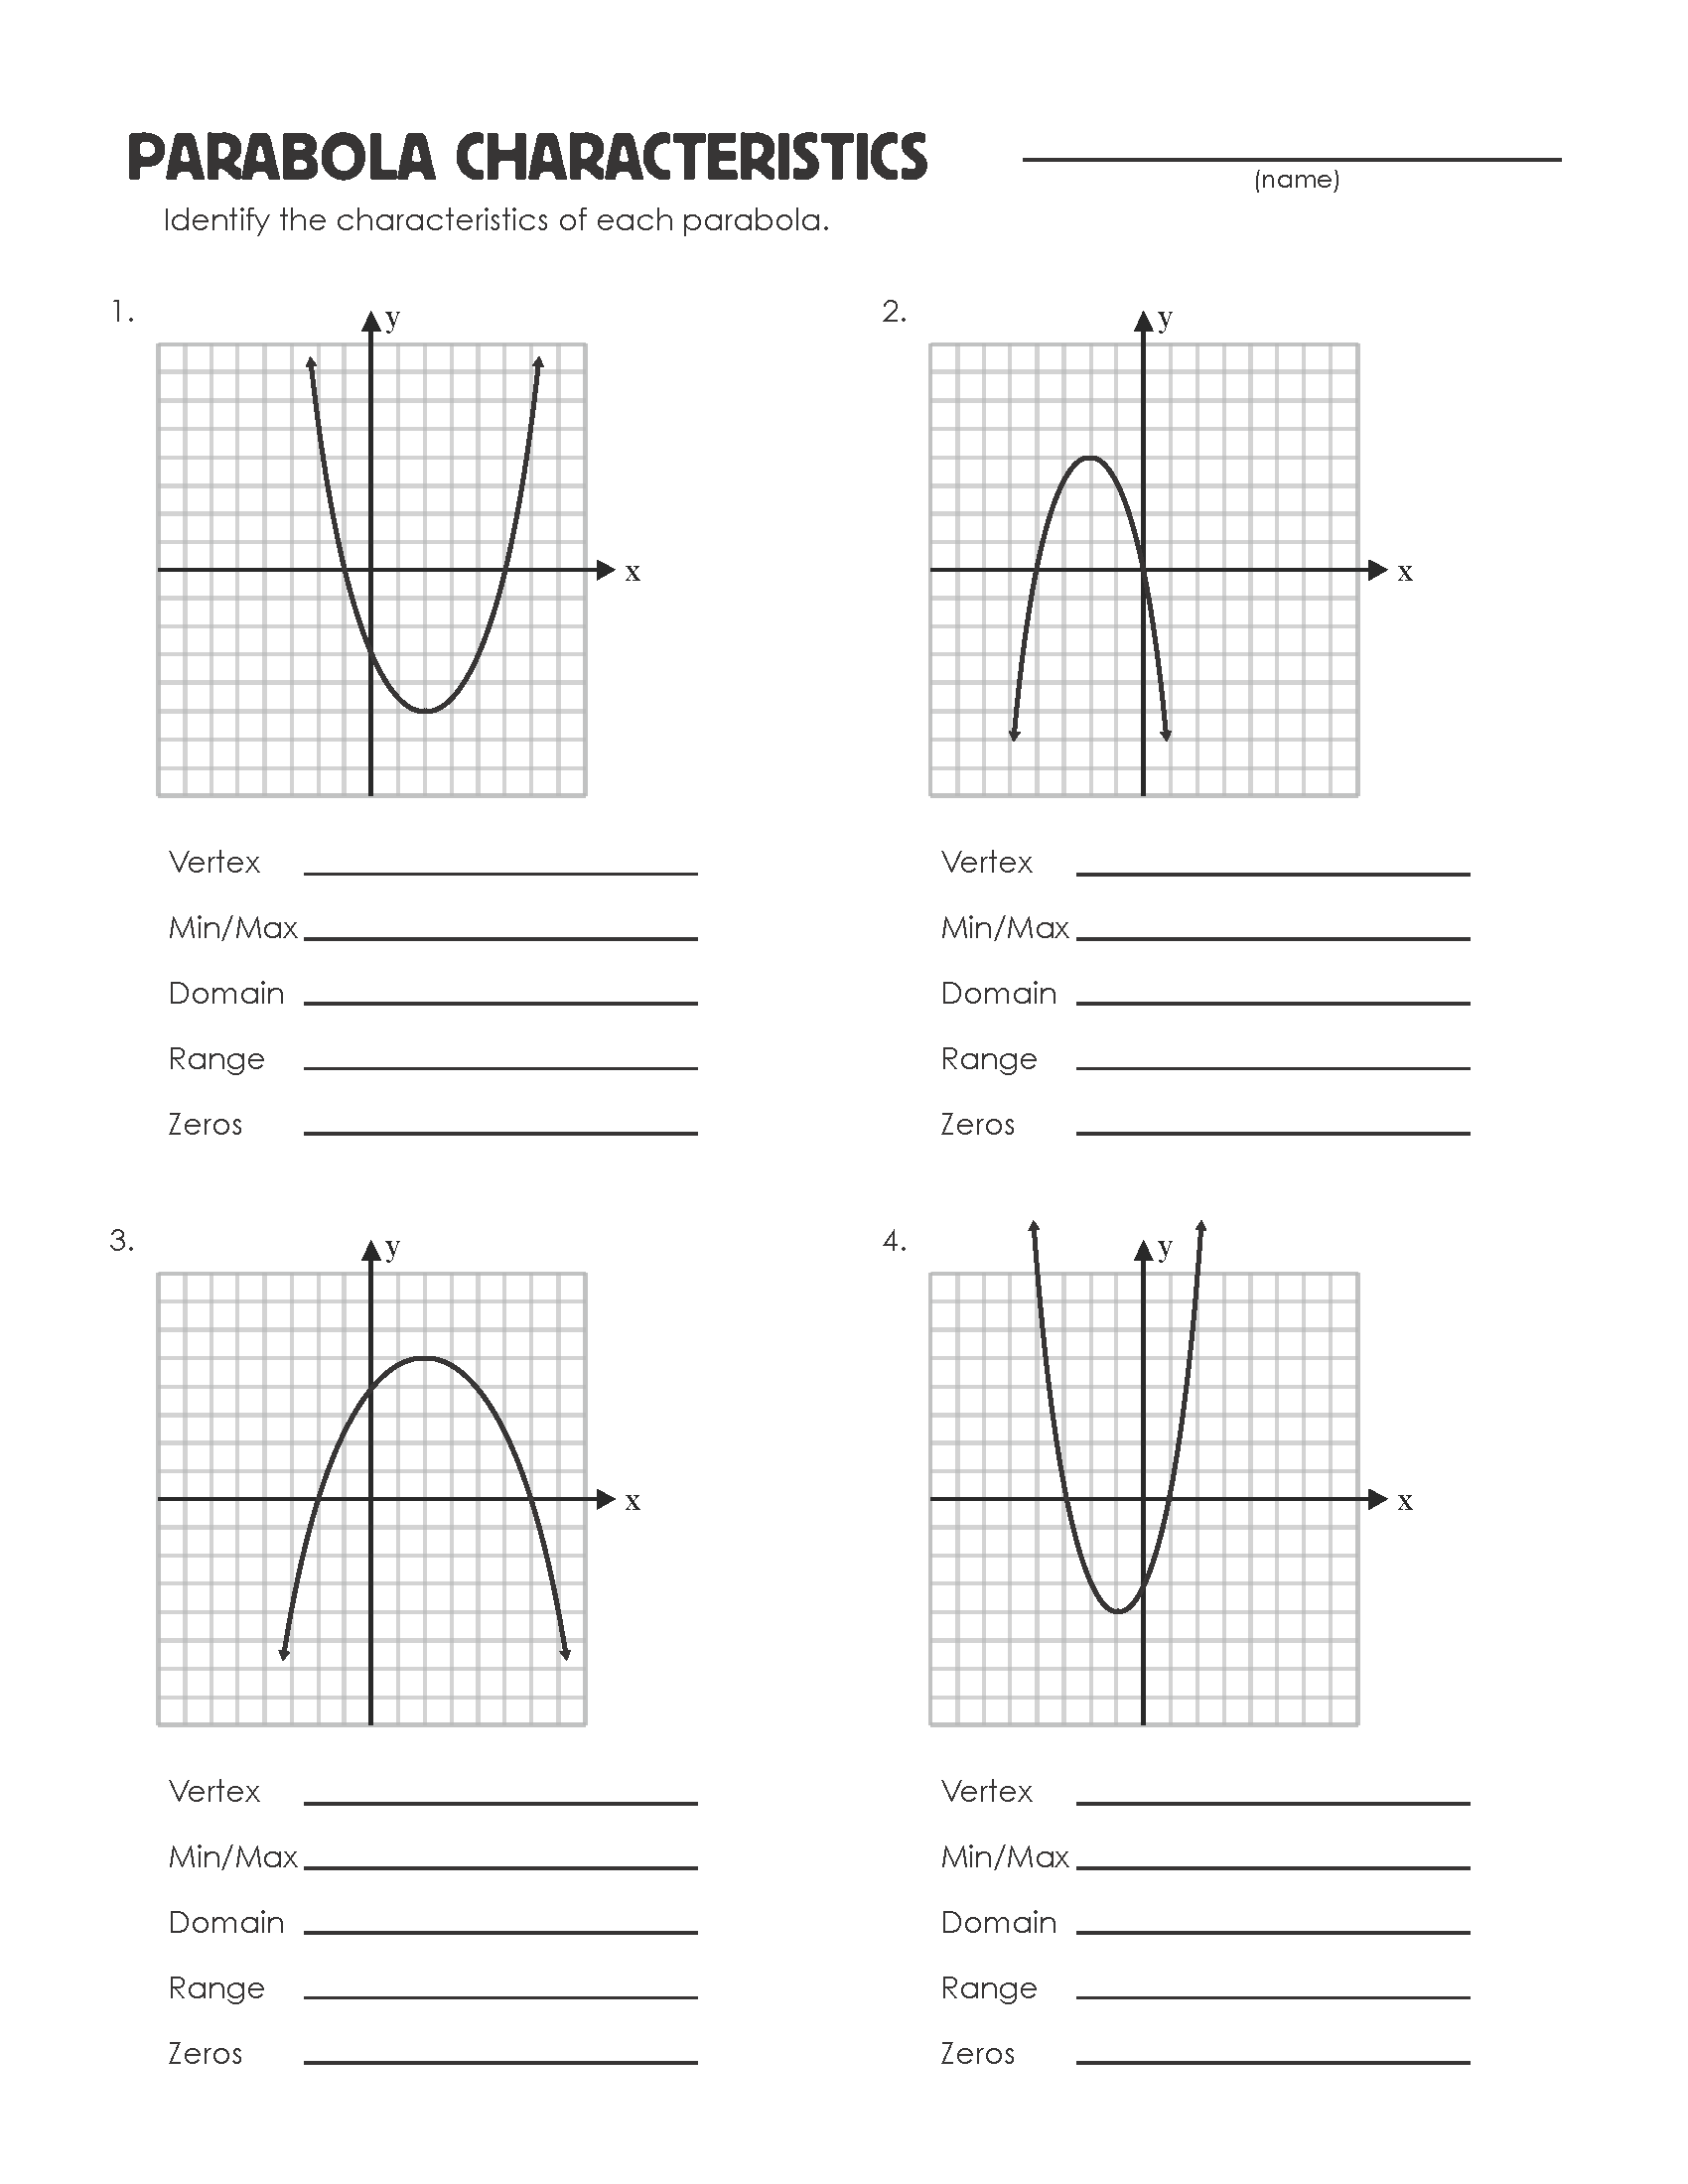 worksheet Parabola Worksheet parabola review worksheet mrmillermath parabolascharacteristics